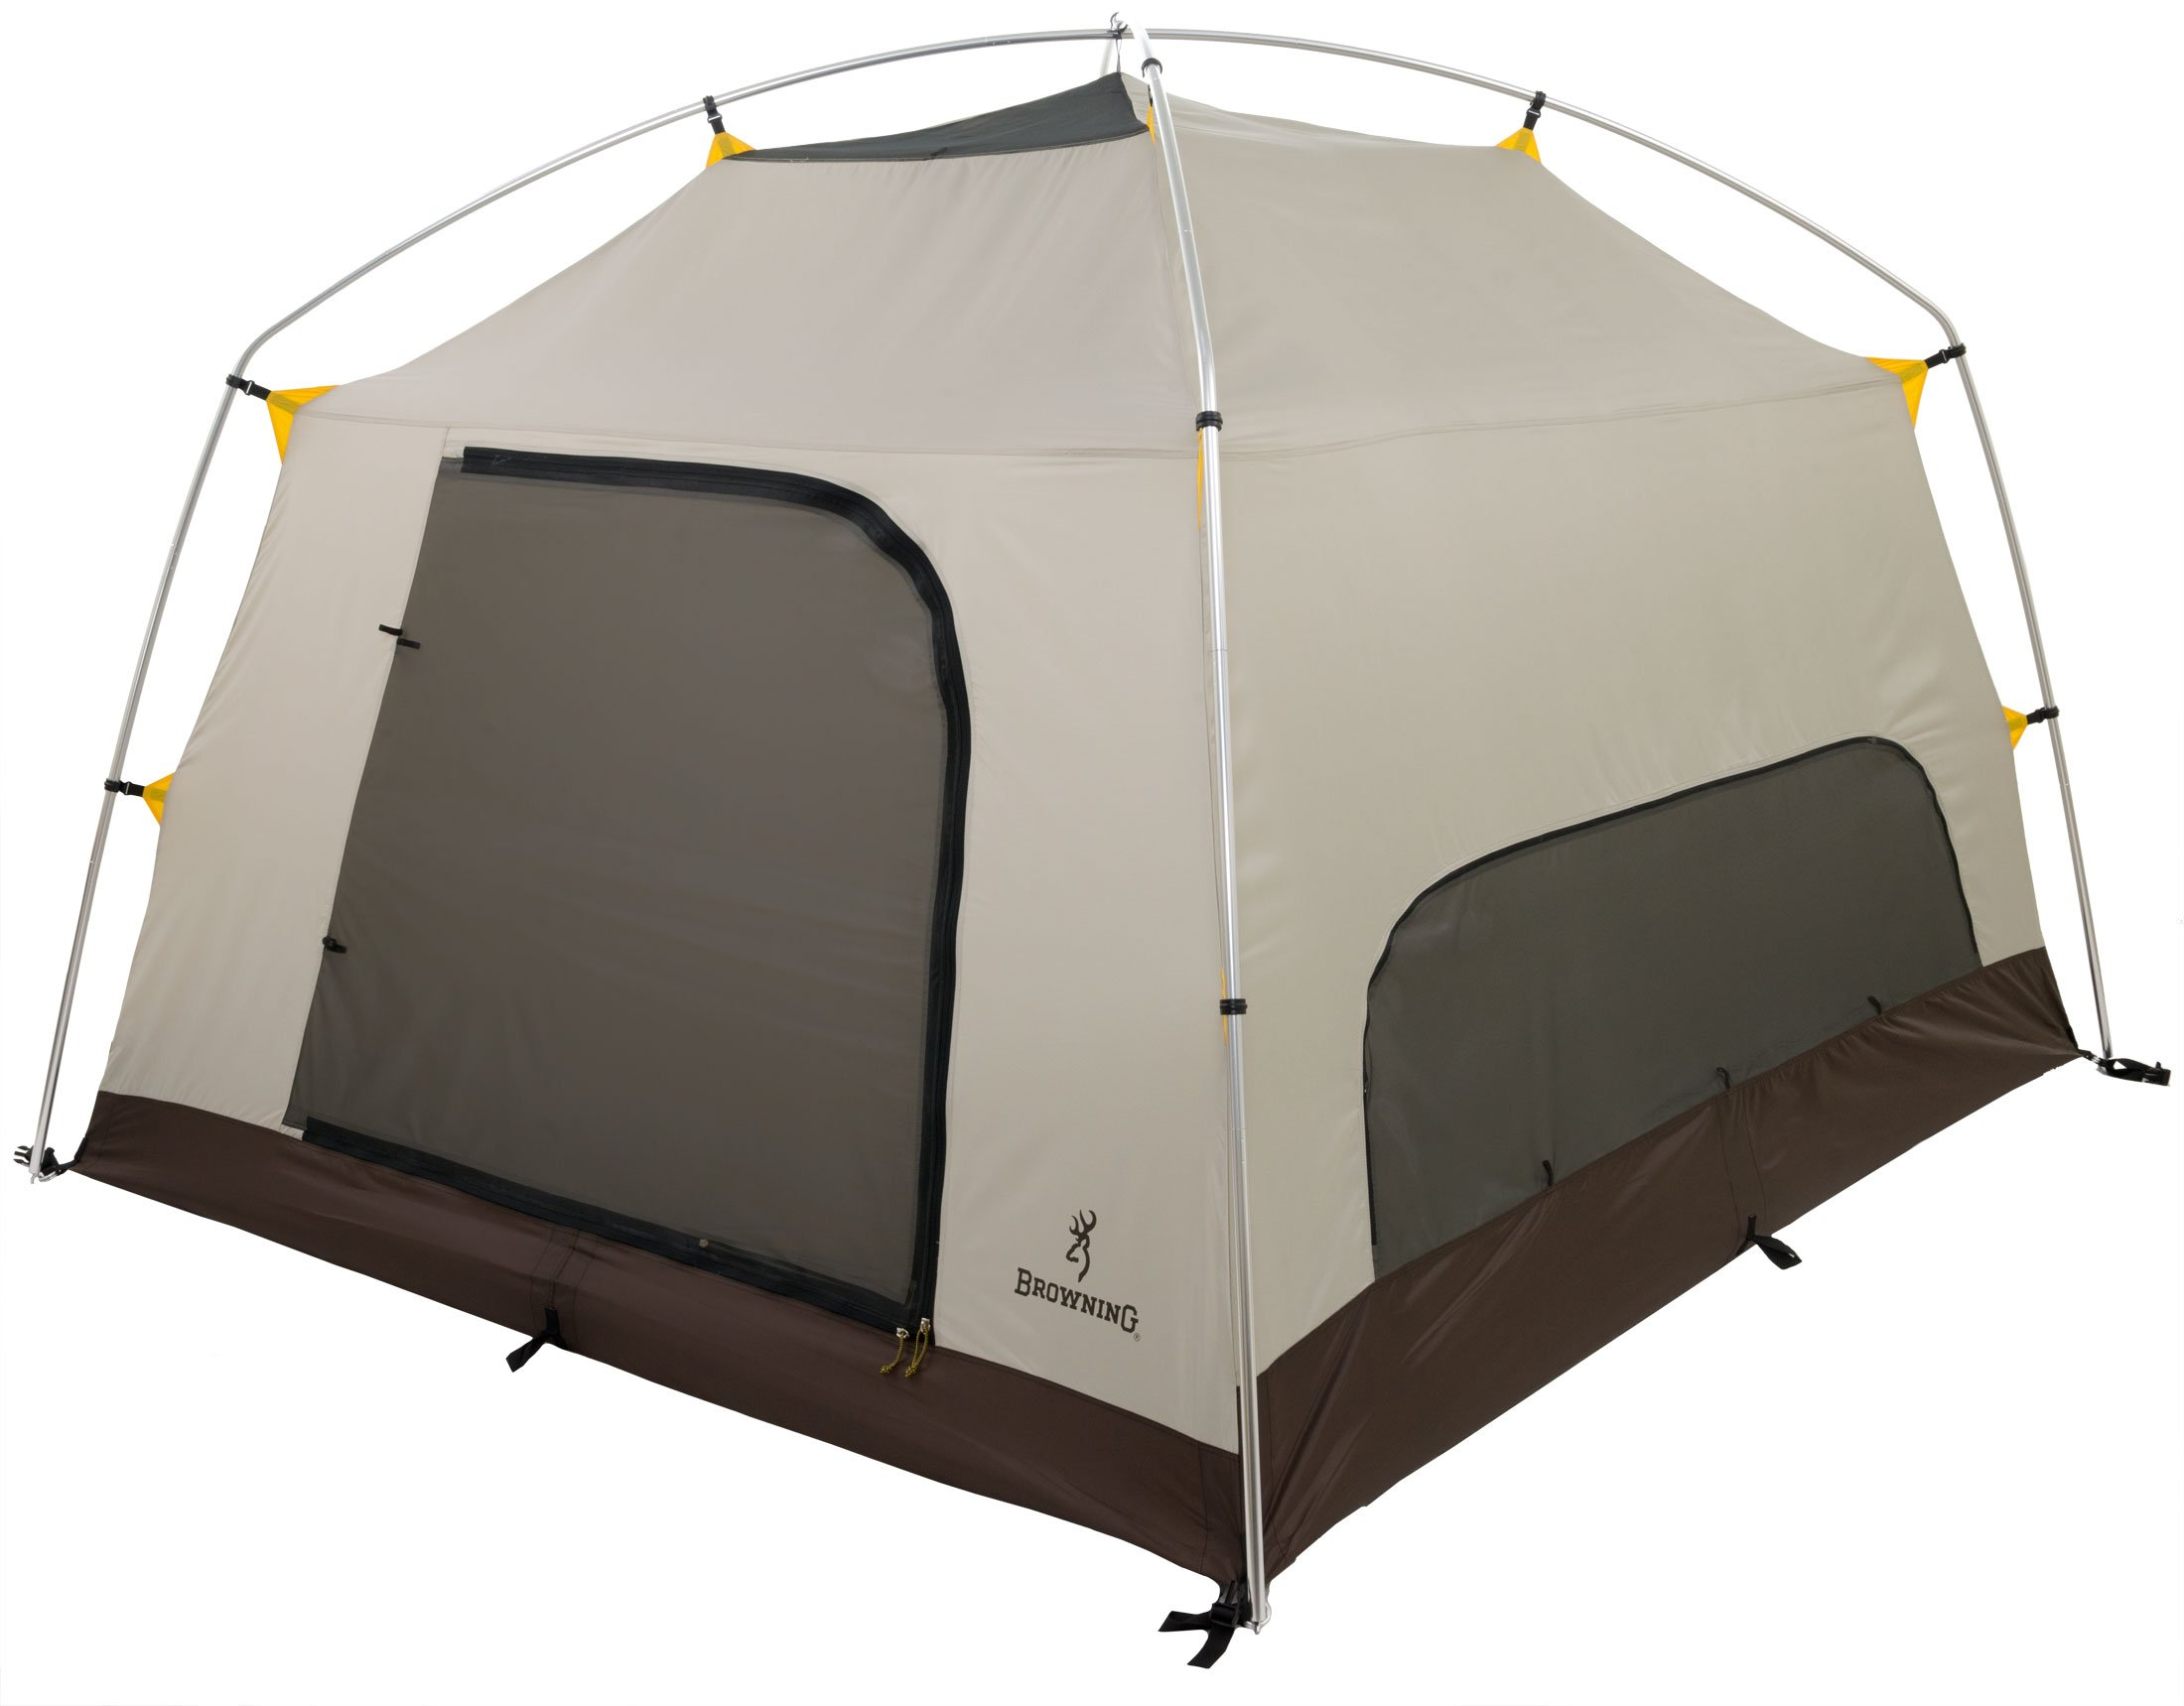 Browning Camping Glacier Tent by Browning Camping